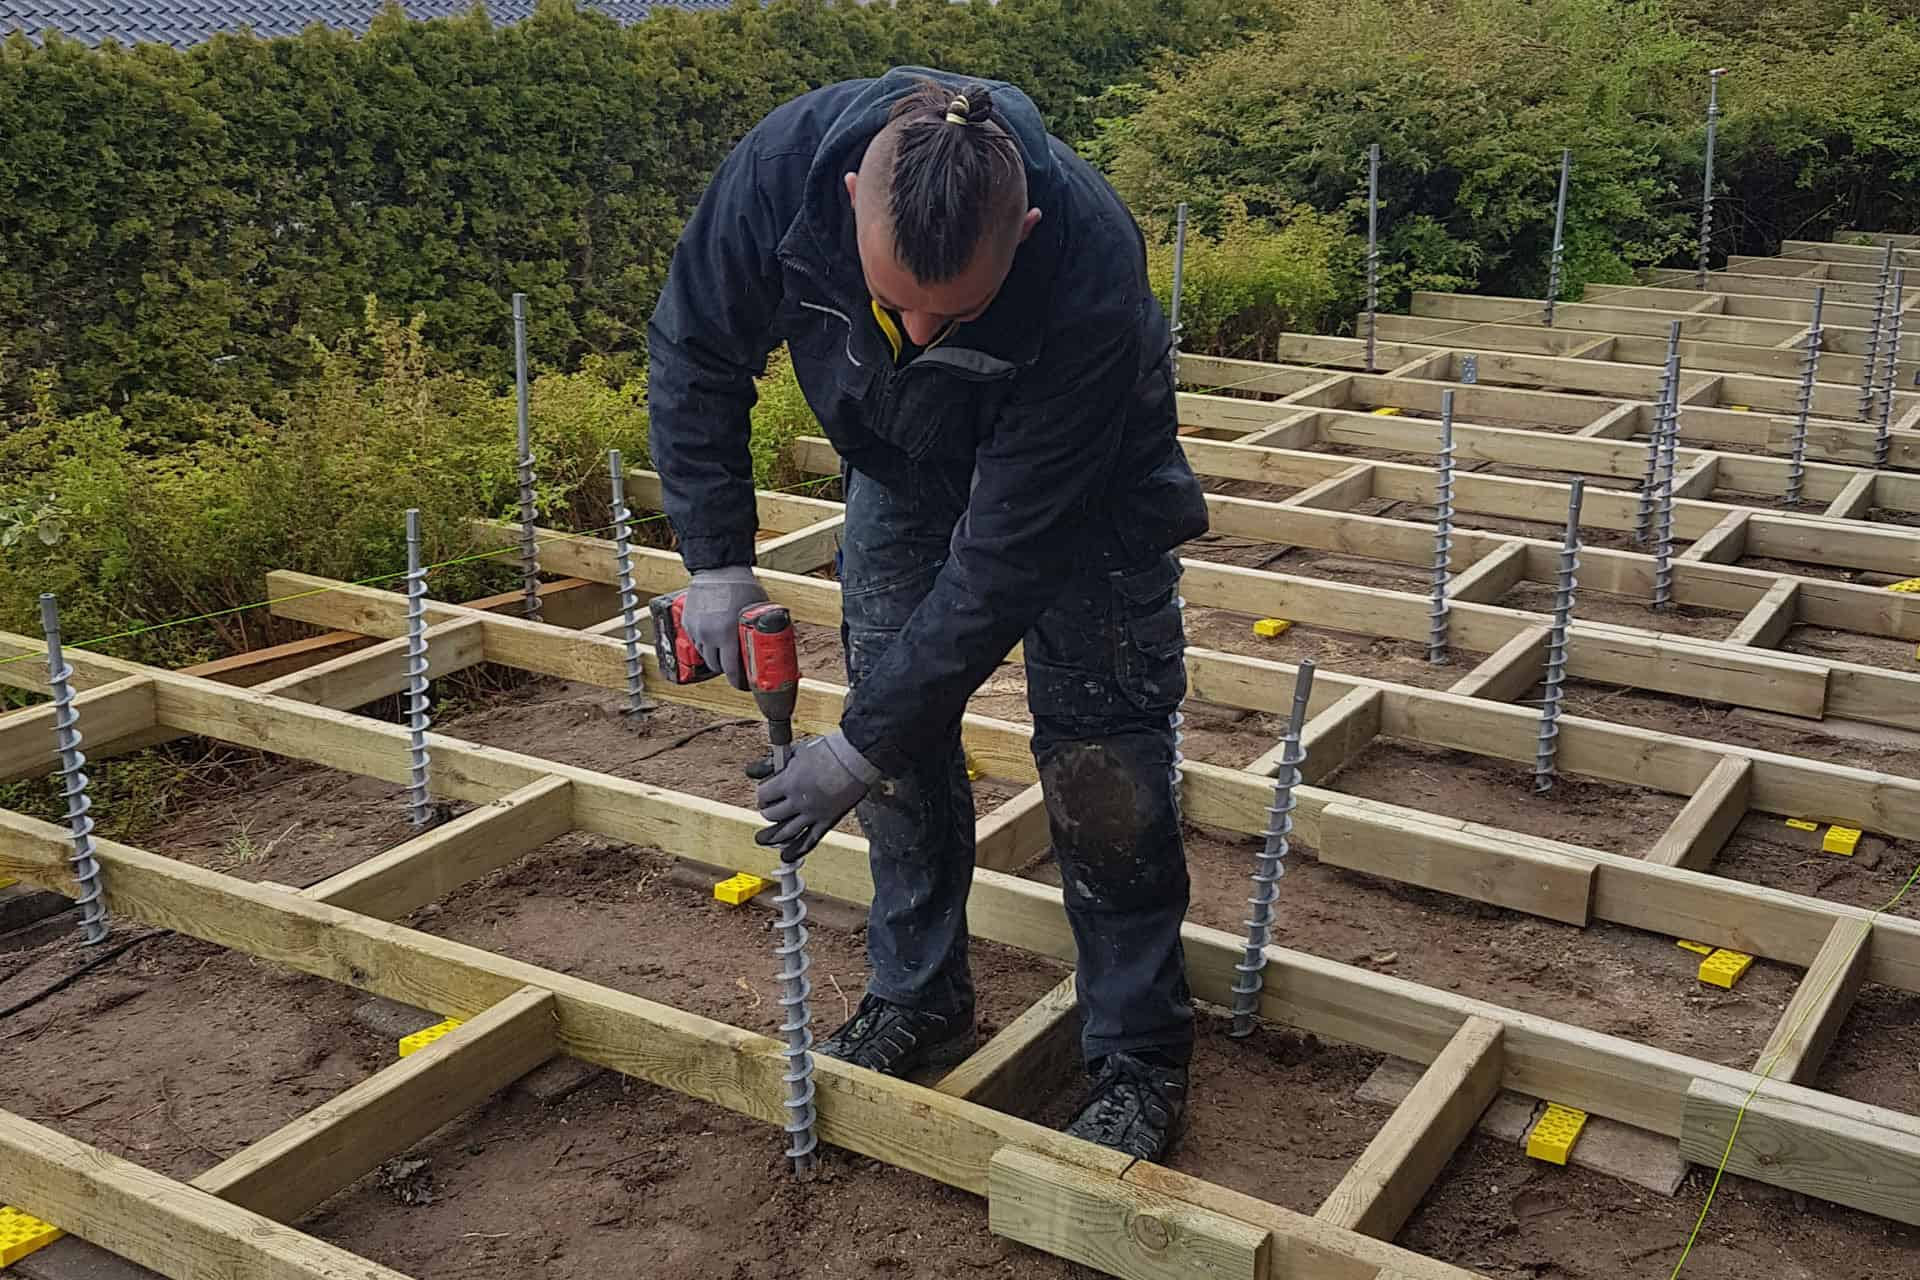 How to build a deck - GroundPlug Twister footing